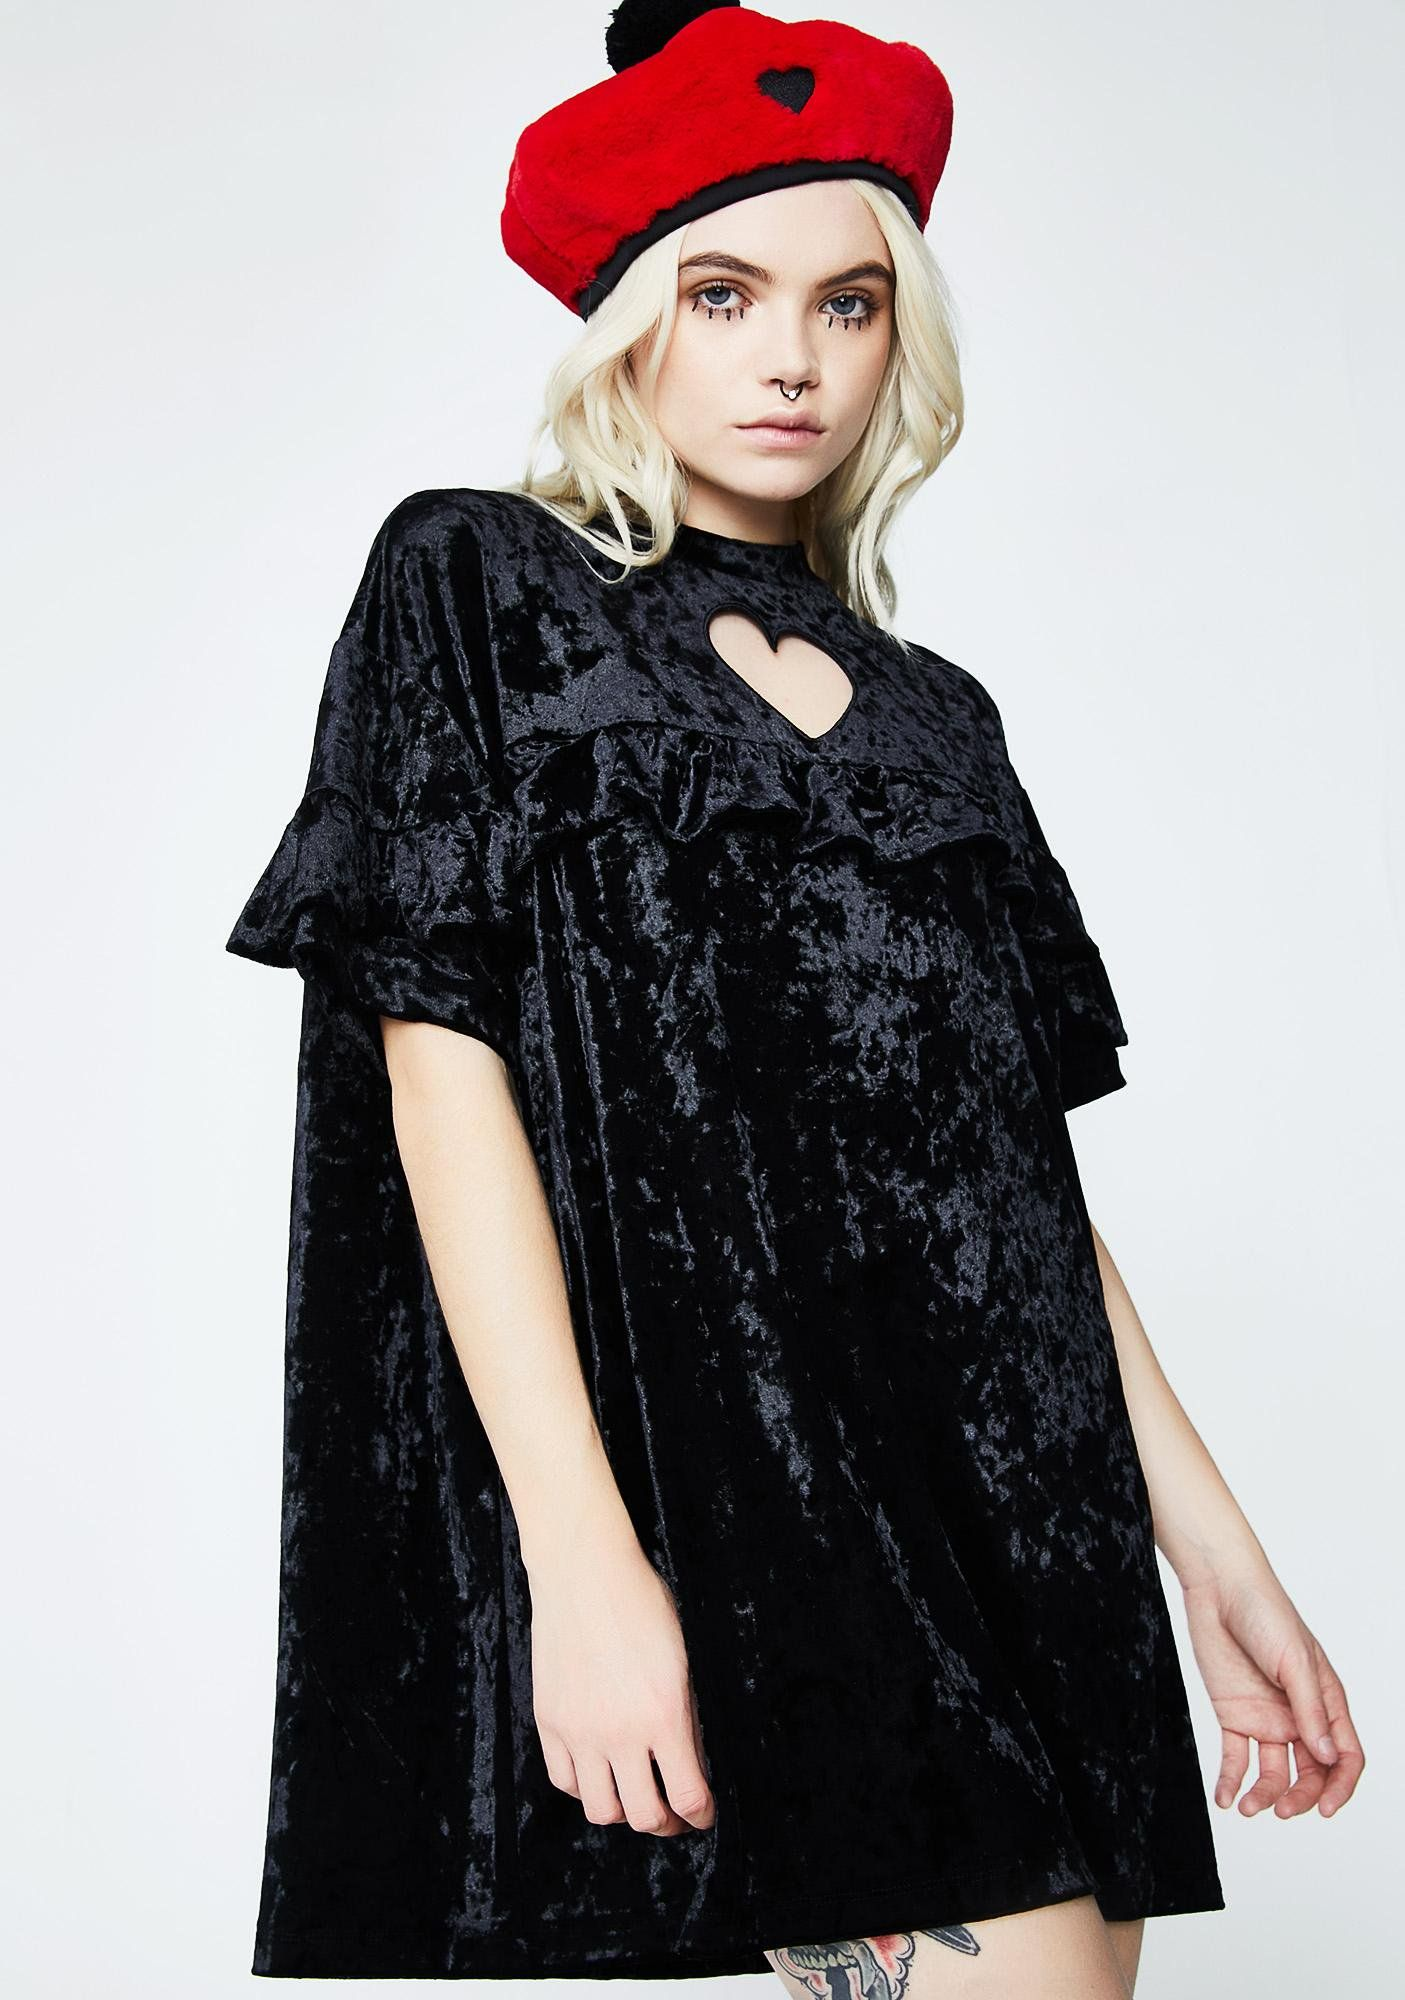 8dbd4448b7 Lazy Oaf Crushed Heart Frilly Tee cuz you break hearts on the daily. This  black